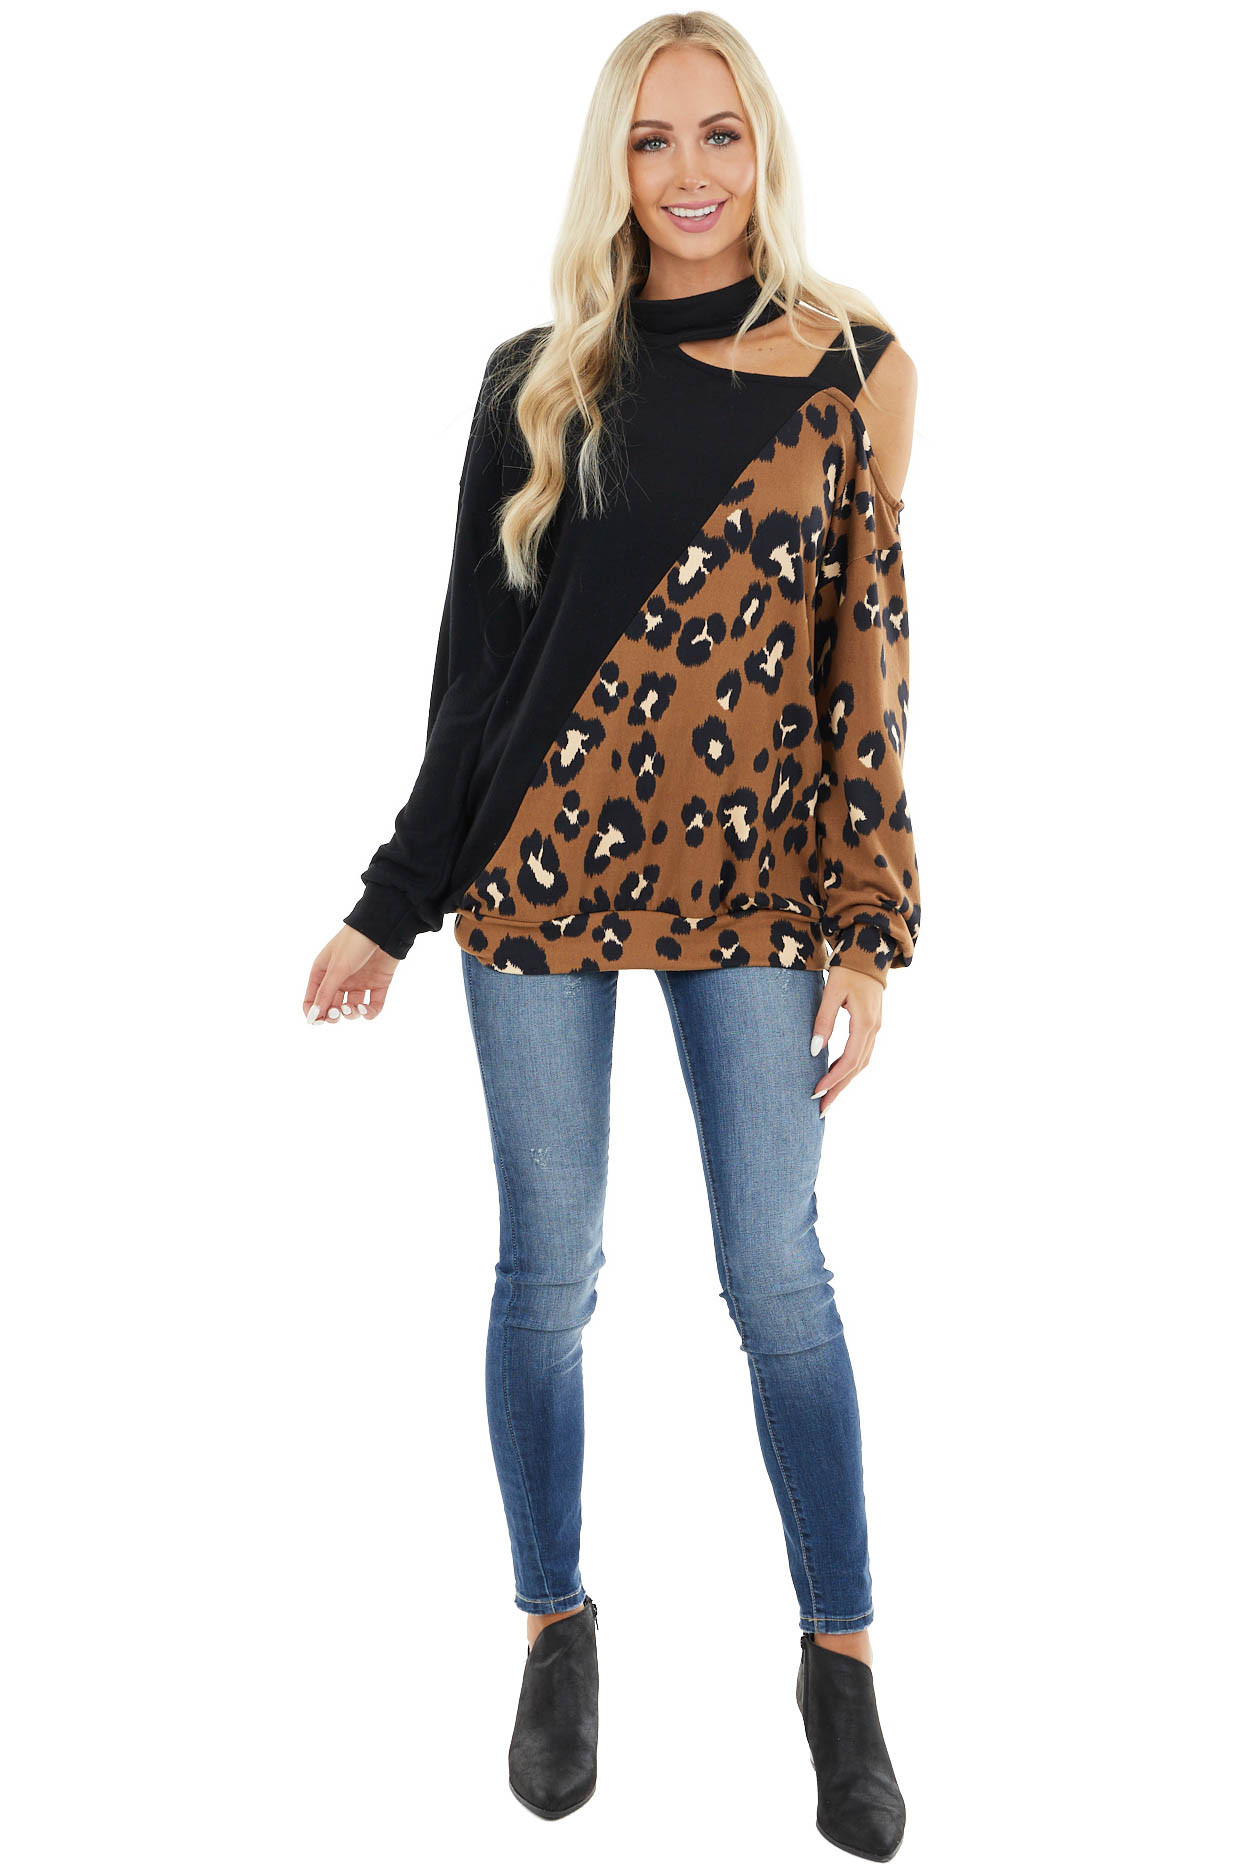 Black and Leopard Print Knit Top with Shoulder Cutout Detail